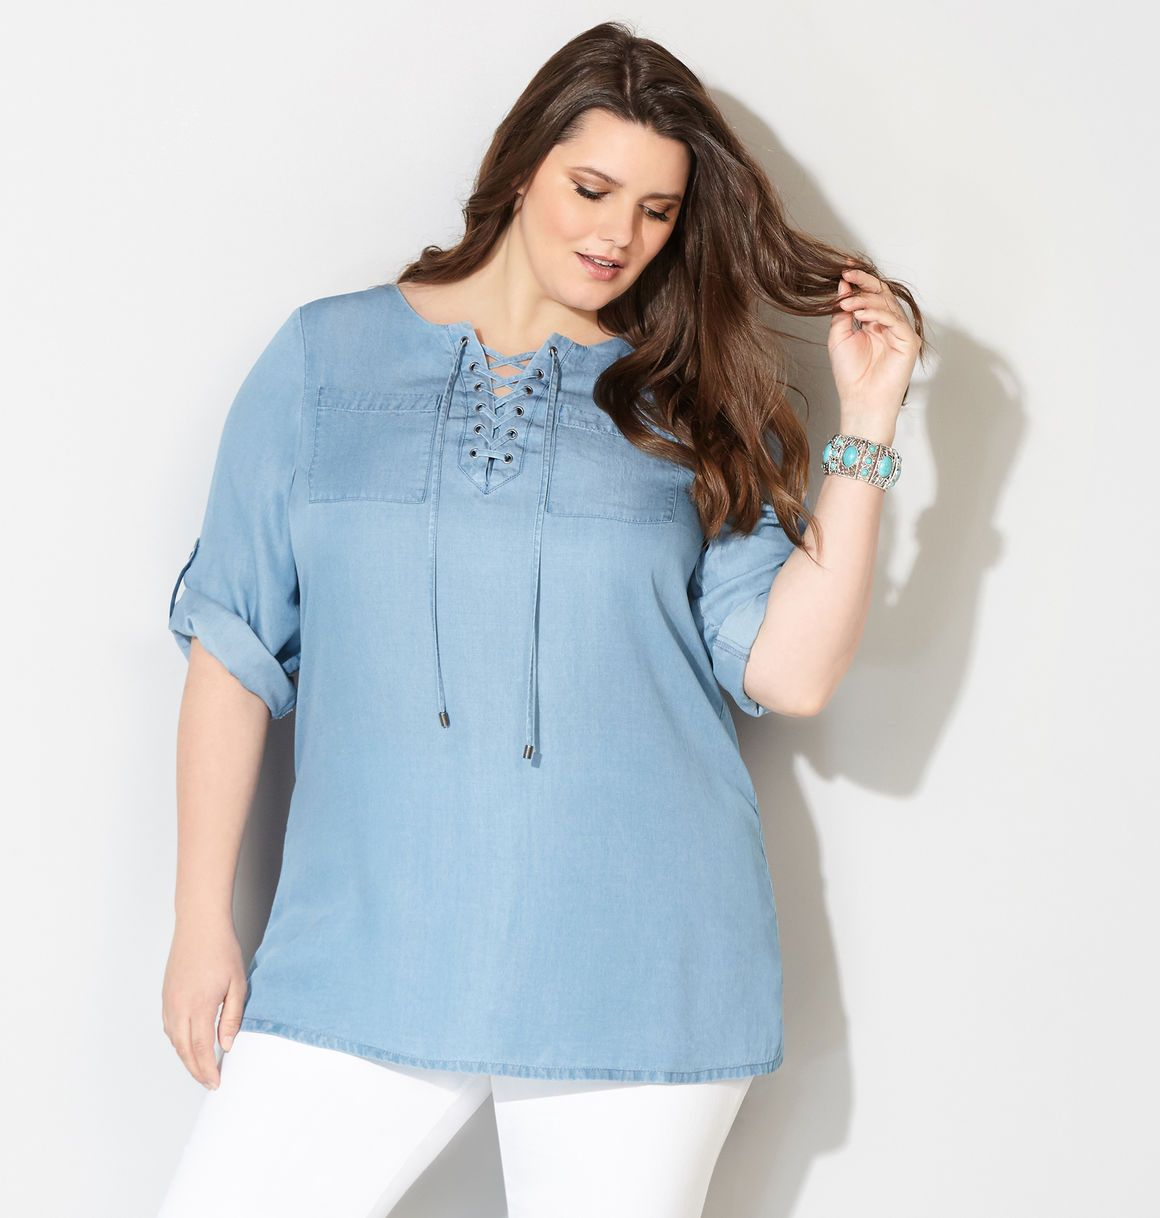 df74047f340 Shop long, flattering tunics in sizes 14-32 like the plus size Lace-Up  Denim Tunic available online at avenue.com. Avenue Store